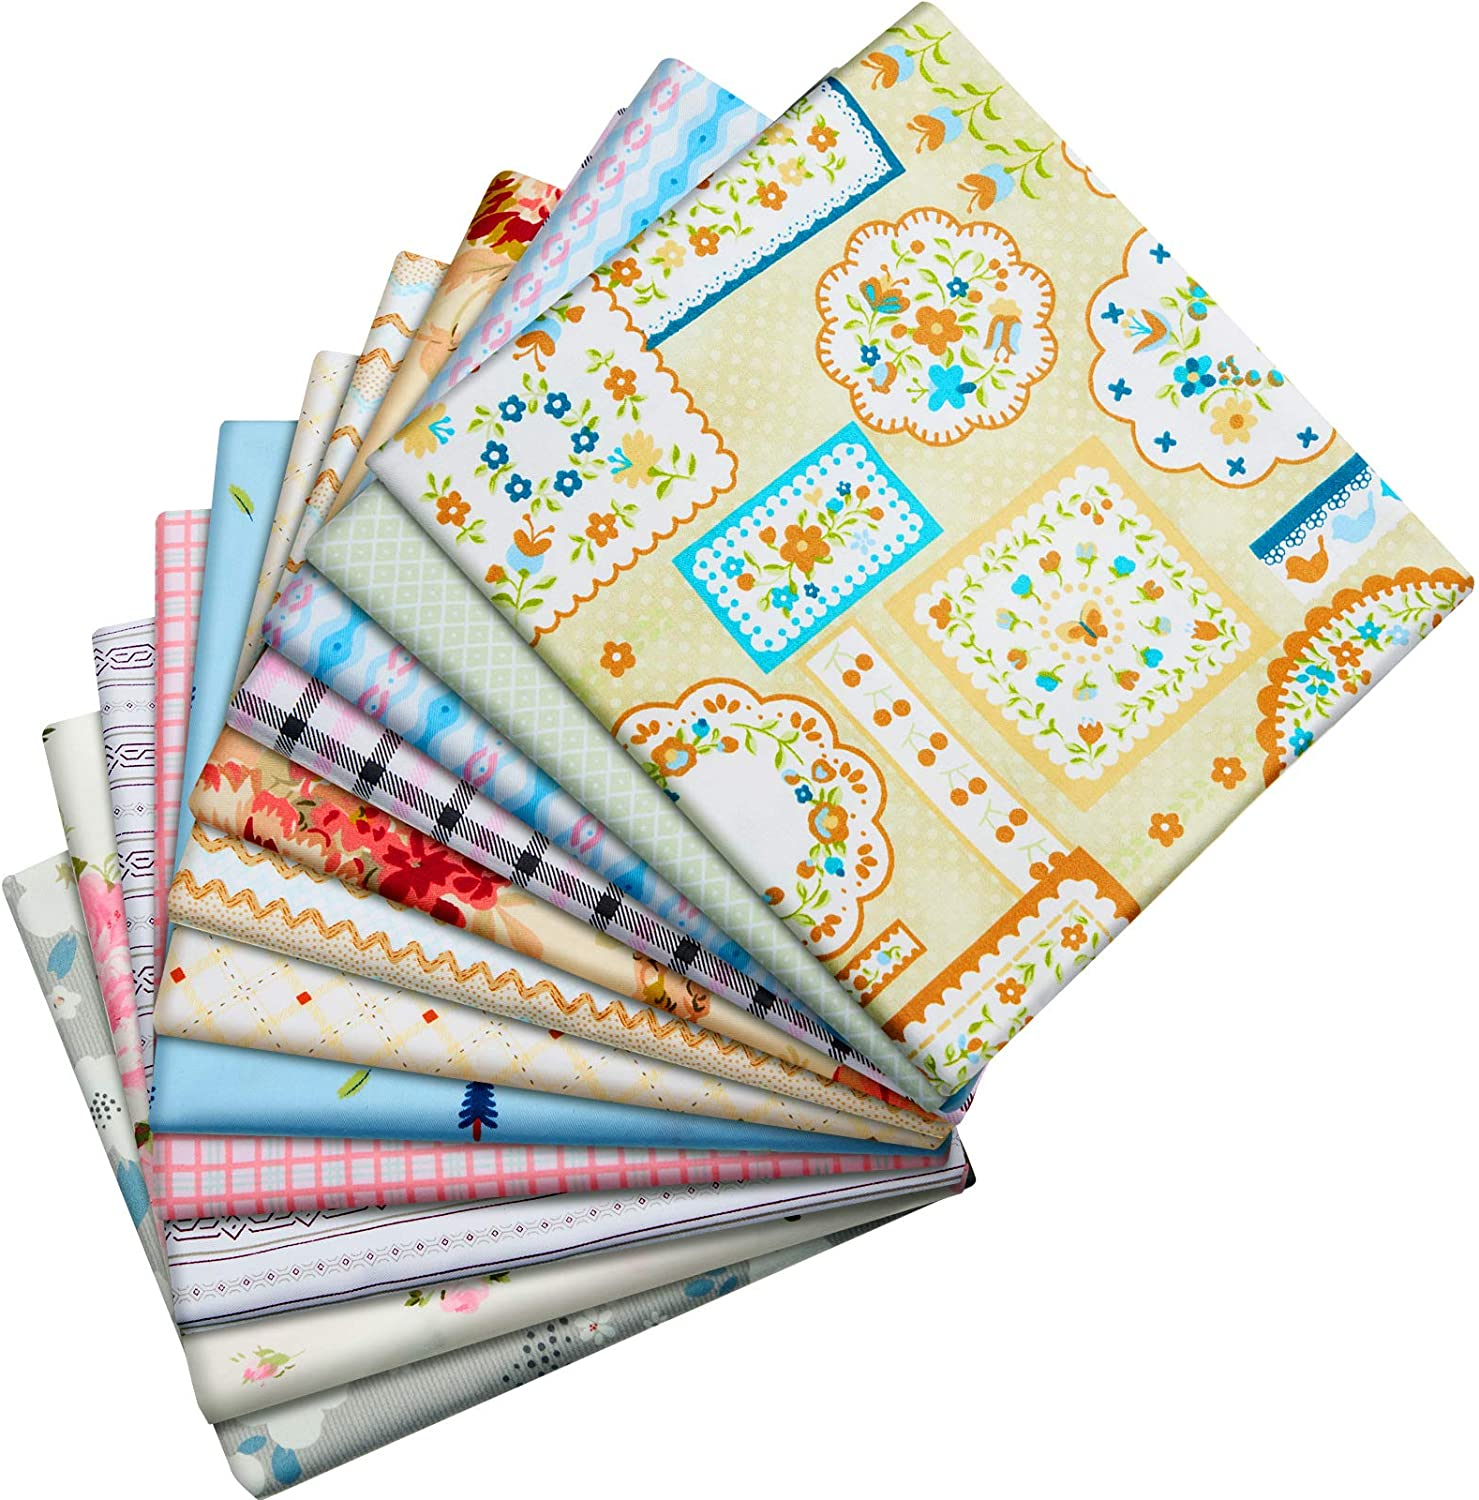 12 Pieces 50 x 50 cm Cotton Quilting Fabric Floral Dot Stripe Fabric Square Bundle Sewing Patchwork Fabric for DIY Art Crafts Scrapbooking Hand Sewing Projects